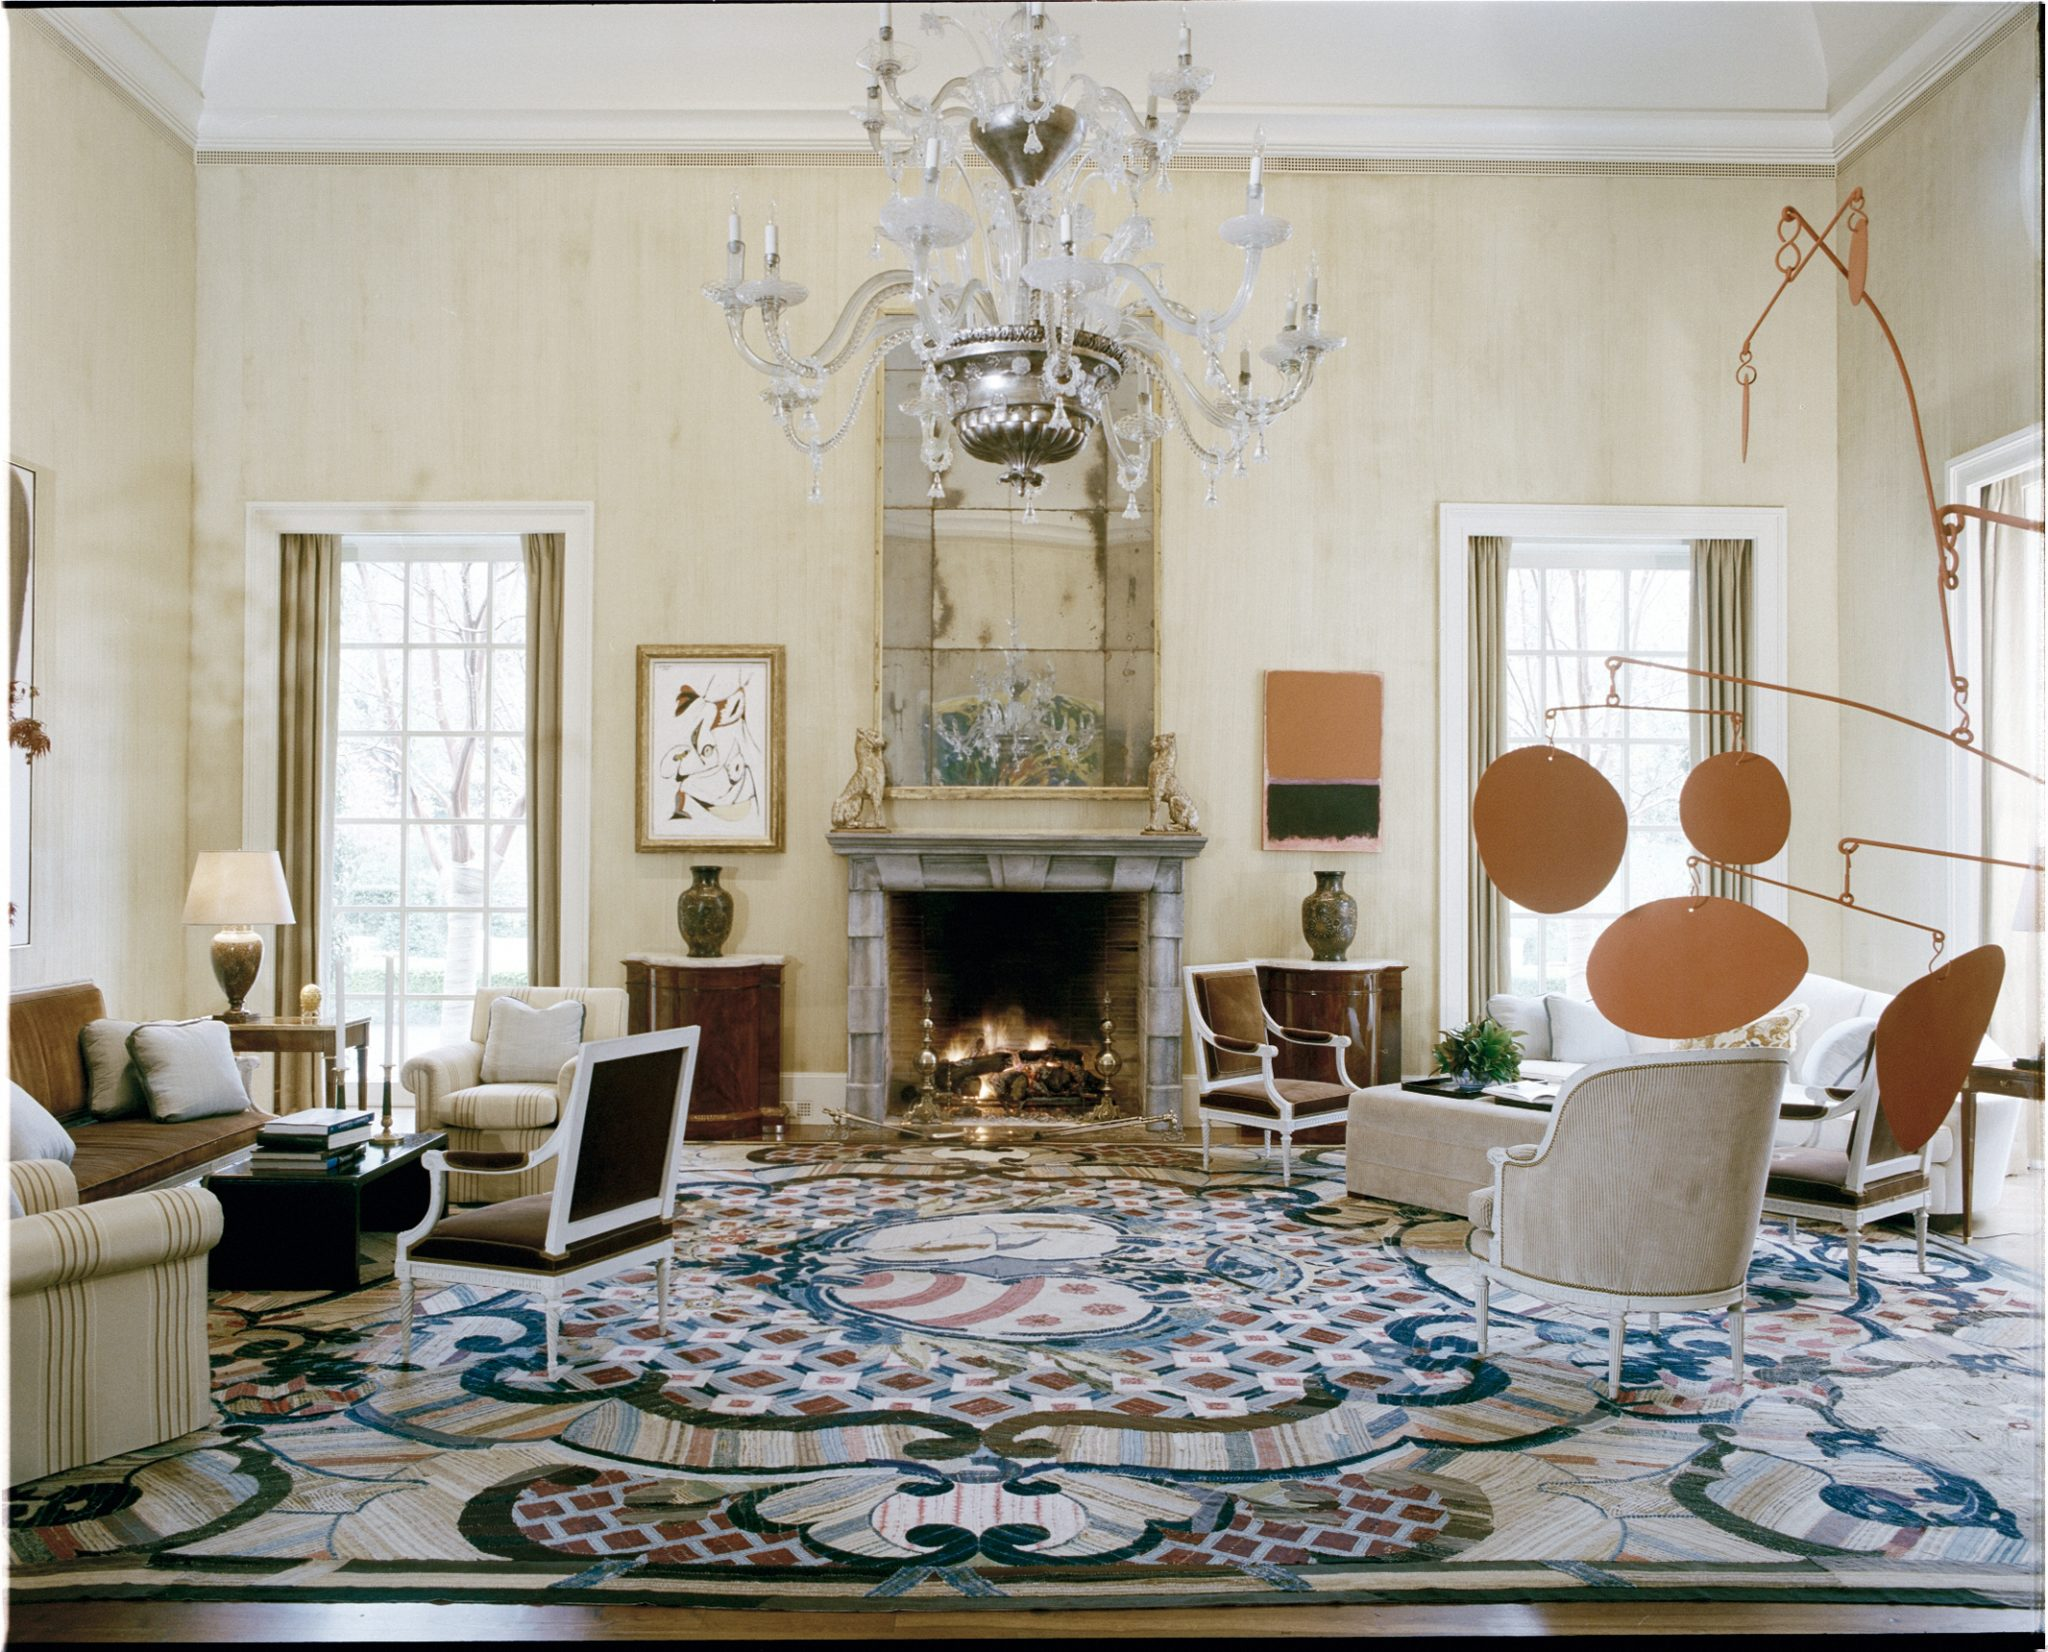 Large living room with modern art, large, colorful rug by Stephen Sills Associates